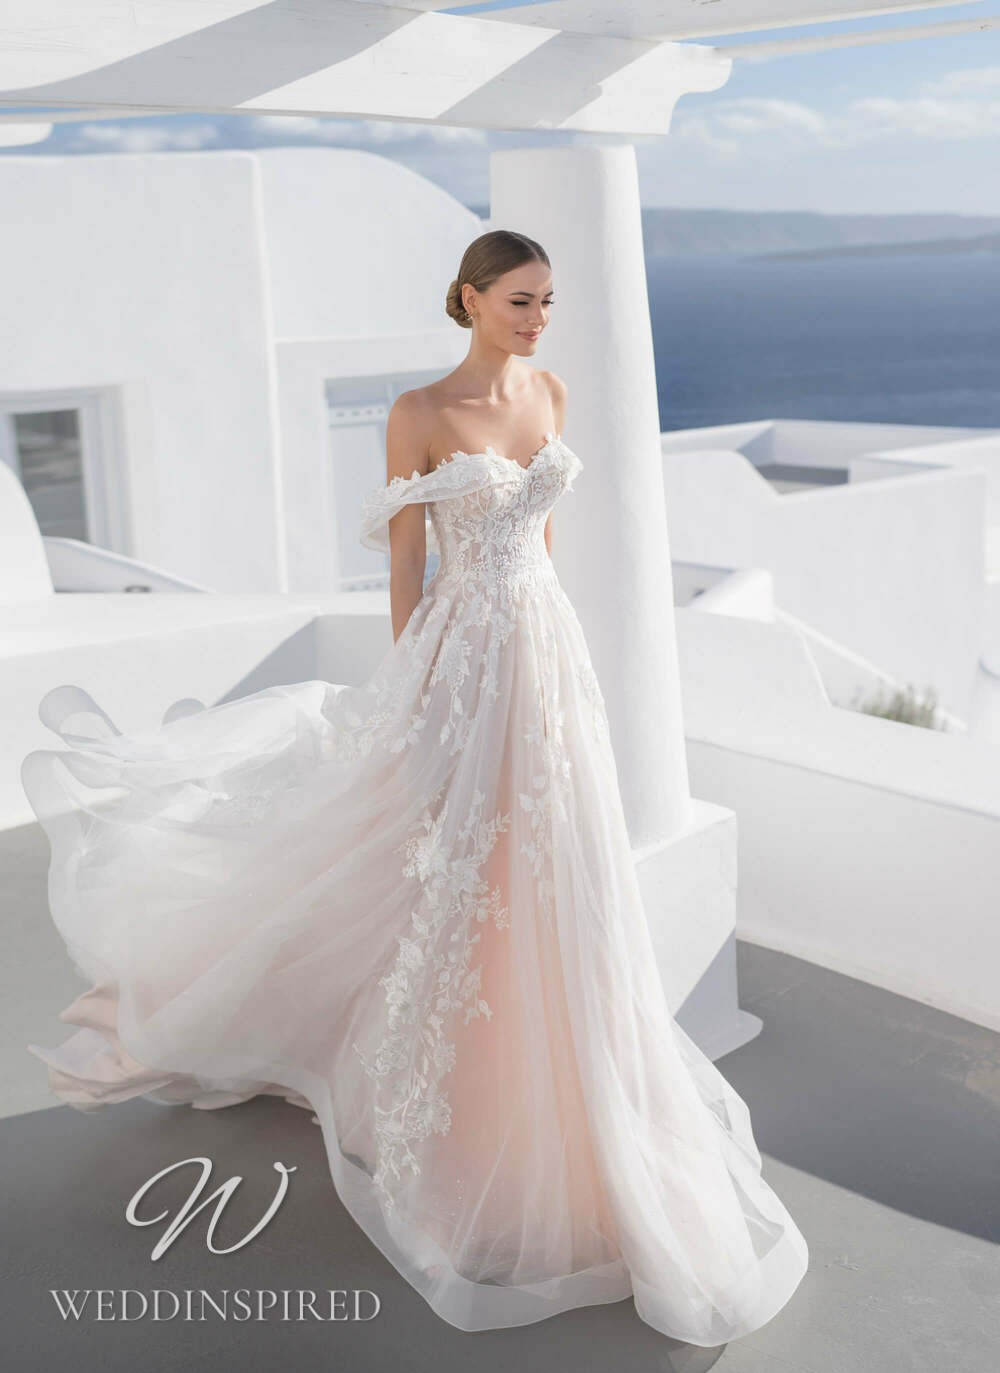 A Blunny 2021 blush off the shoulder lace and tulle A-line wedding dress